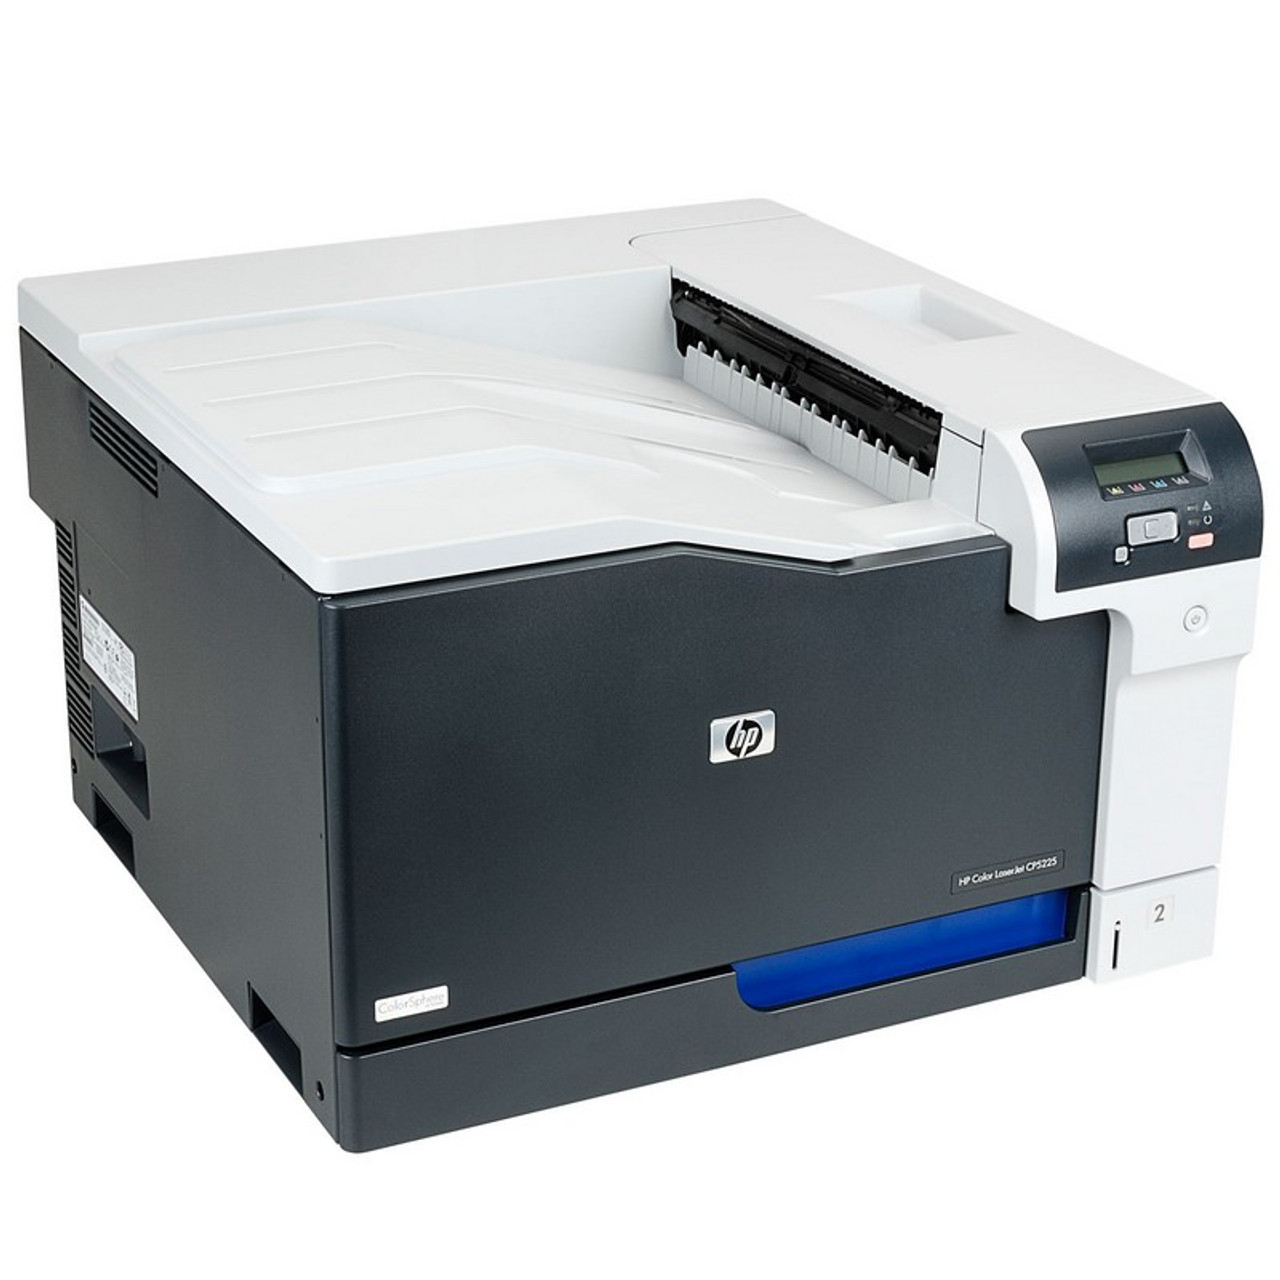 Product image for HP LaserJet Pro CP5225n A3 Colour Laser Printer   CX Computer Superstore